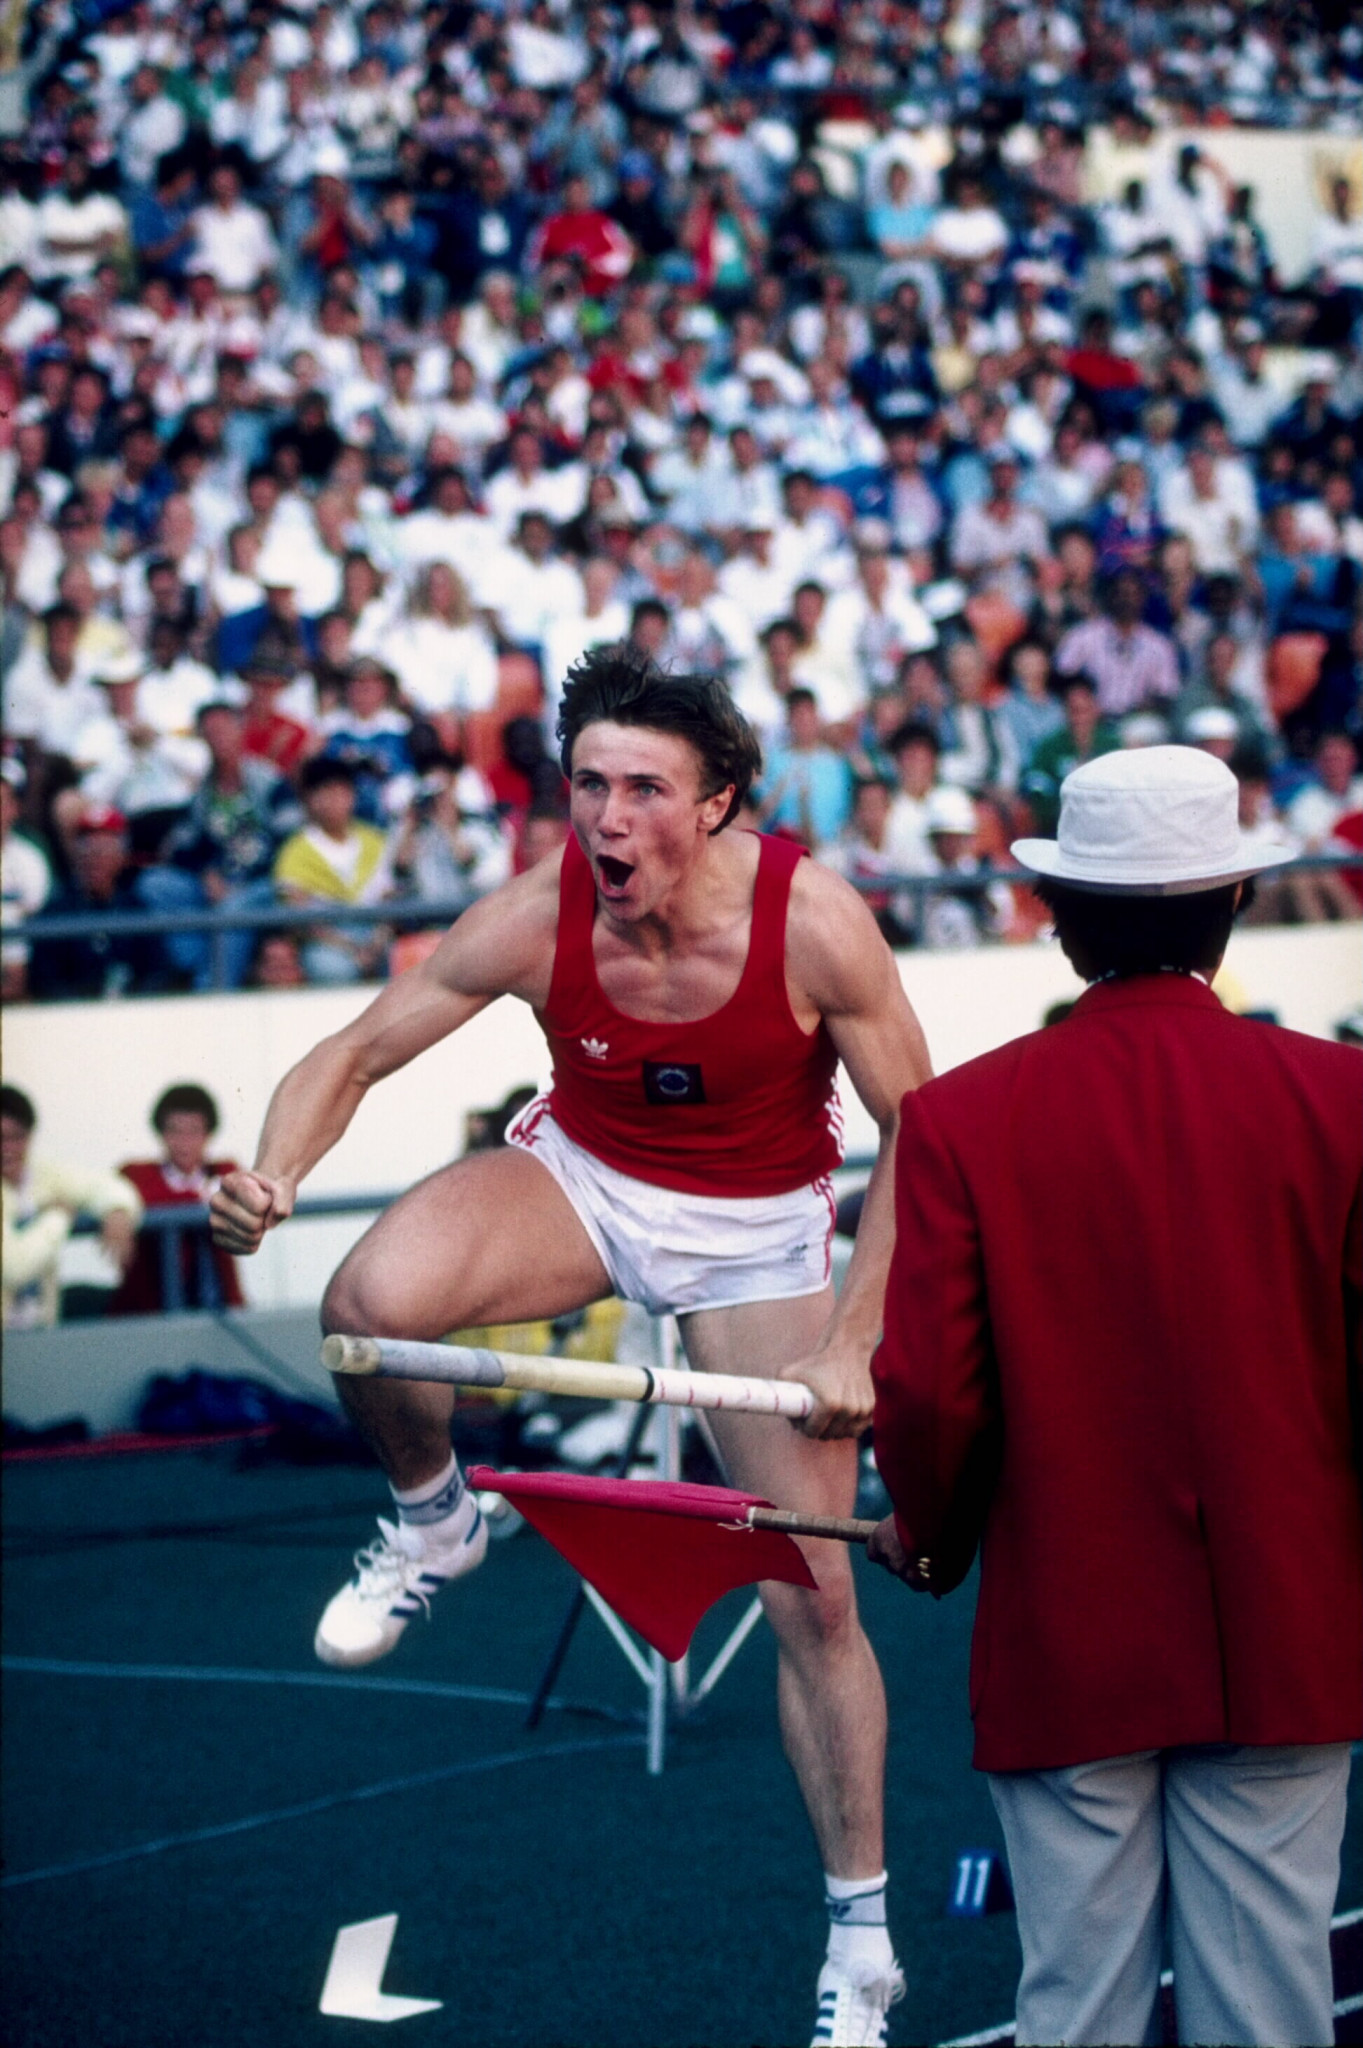 Sergey Bubka, pictured during the 1988 Seoul Olympics final where he took pole vault gold, set a world indoor record of 6.14m at Liévin in 1993 ©Getty Images